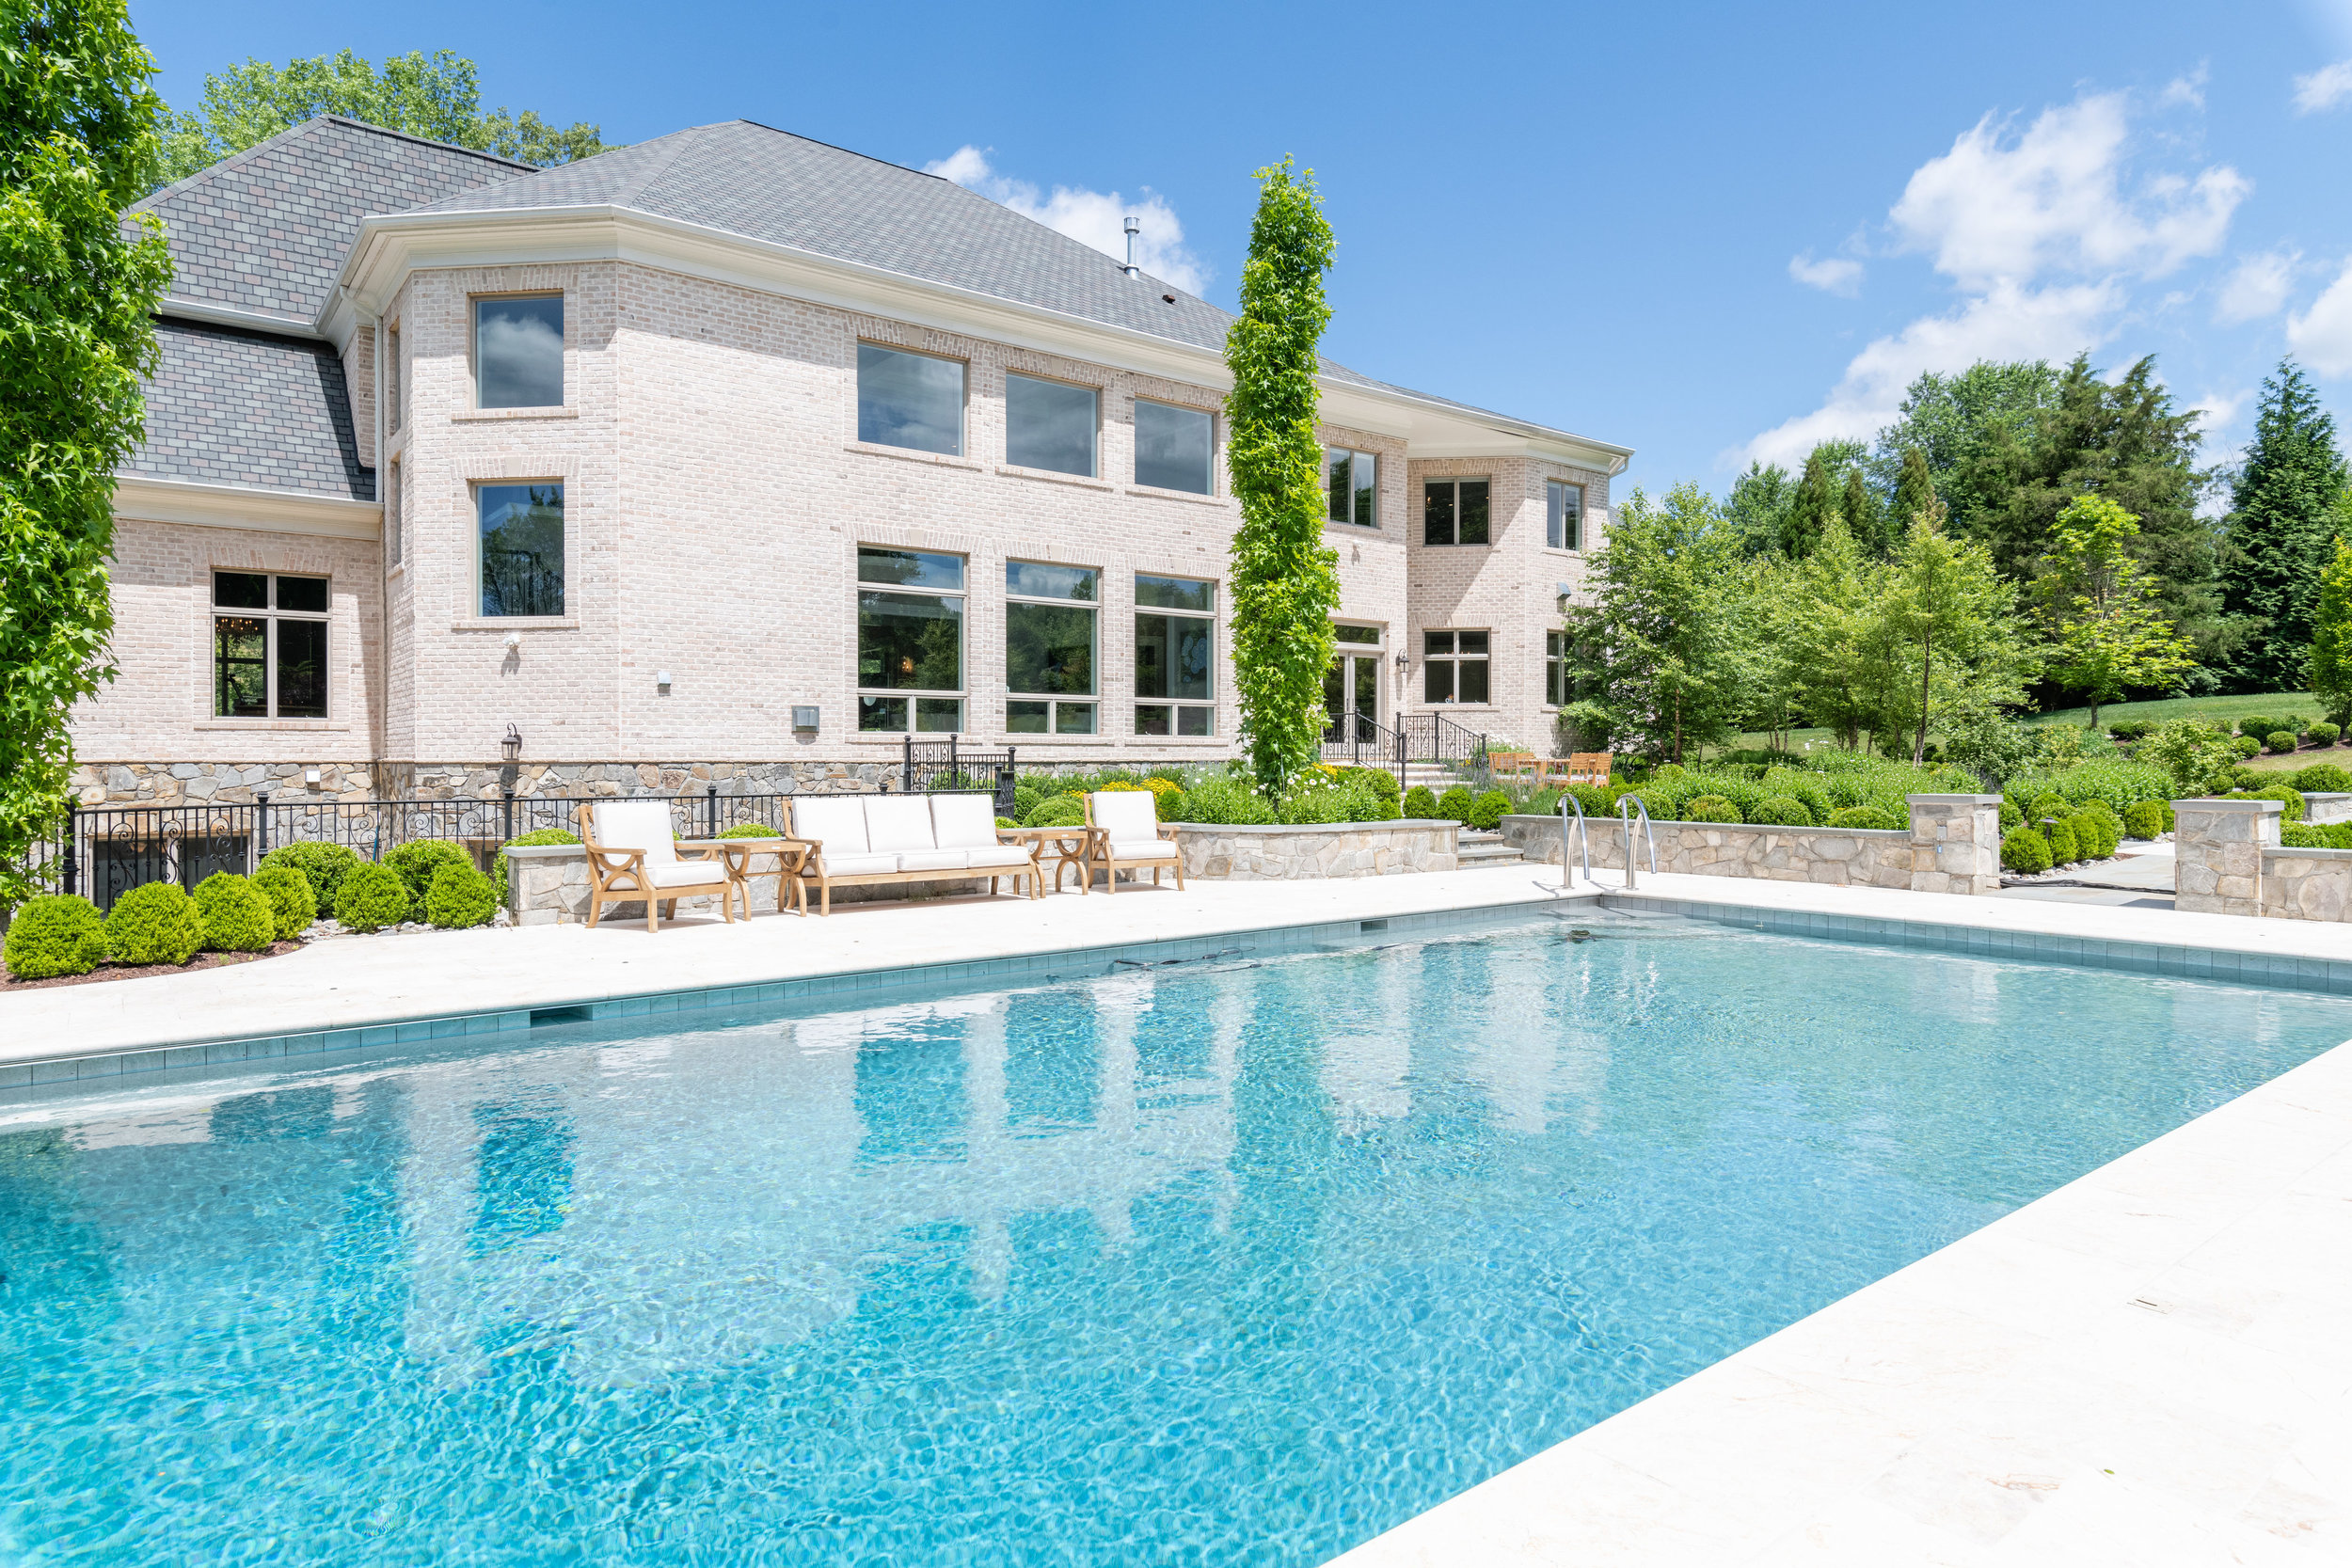 Lovely Pool and Terraces